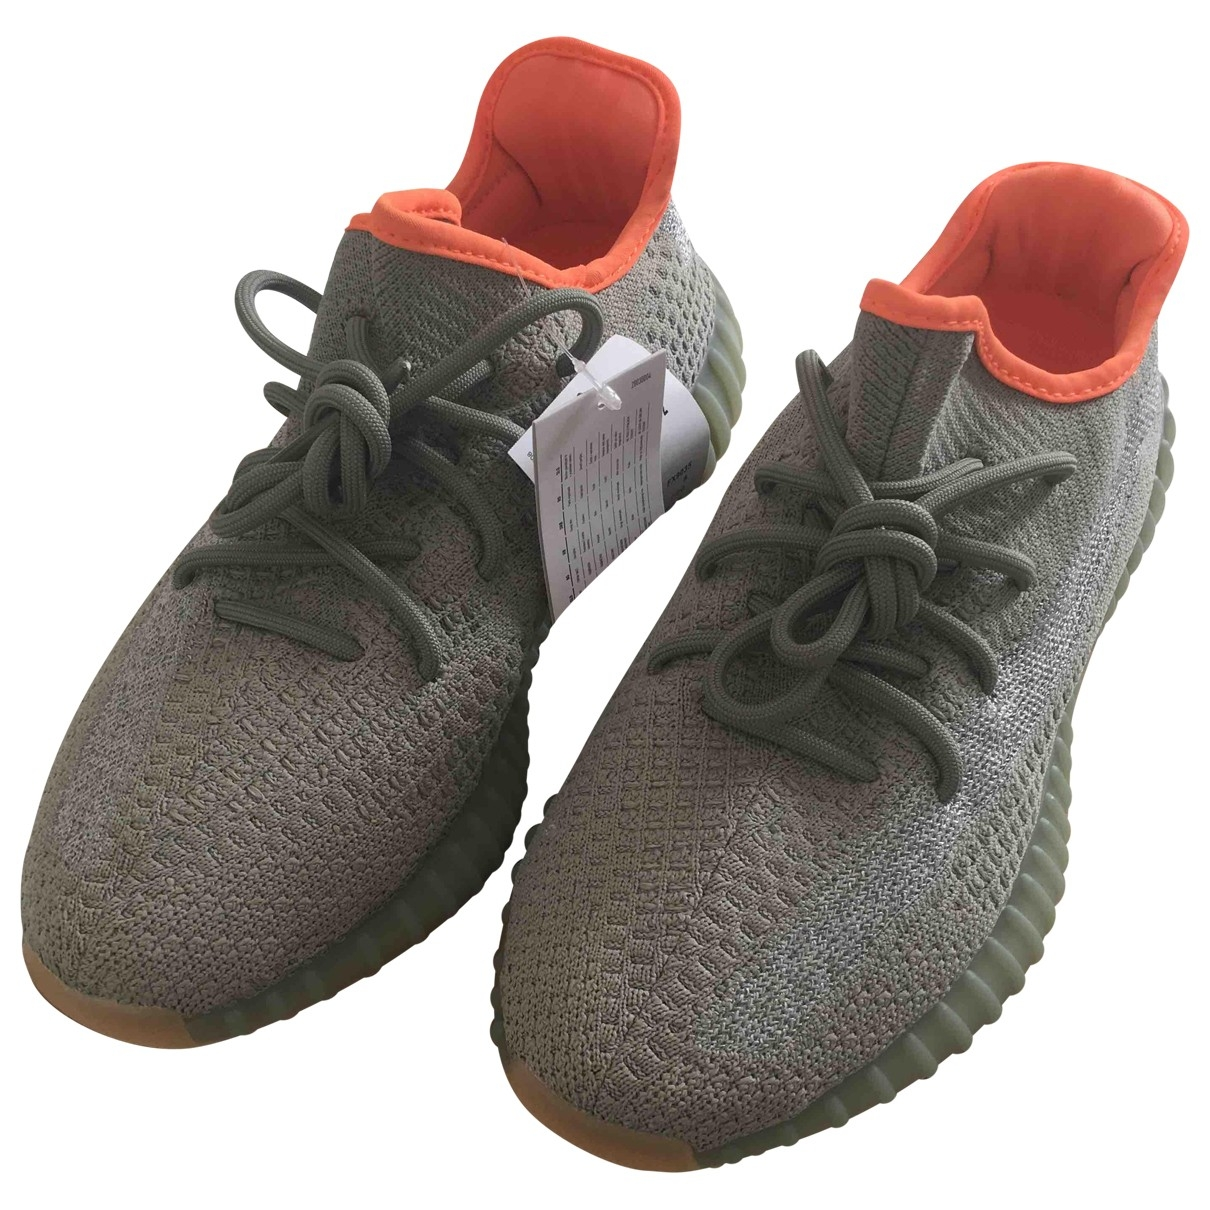 Yeezy X Adidas Boost 350 V2 Grey Cloth Trainers for Men 42 EU